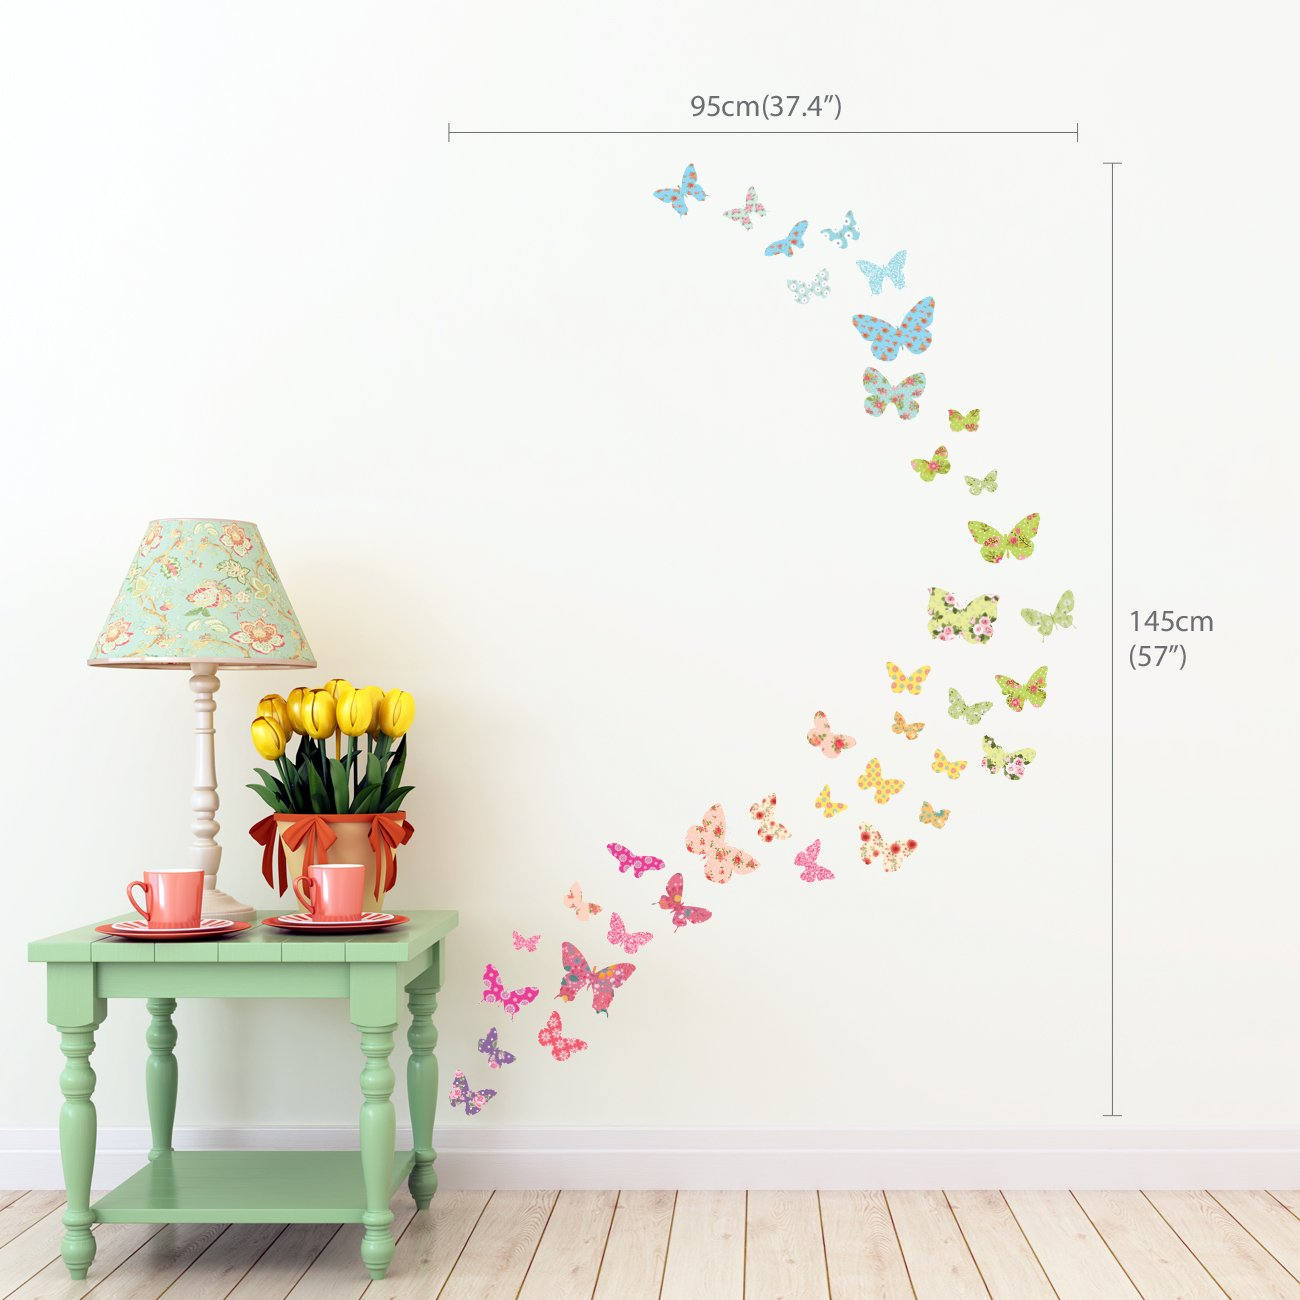 Decowall DW-1408 Patterned Butterflies Kids Wall Decals Wall Stickers Peel and Stick Removable Wall Stickers for Kids Nursery Bedroom Living Room